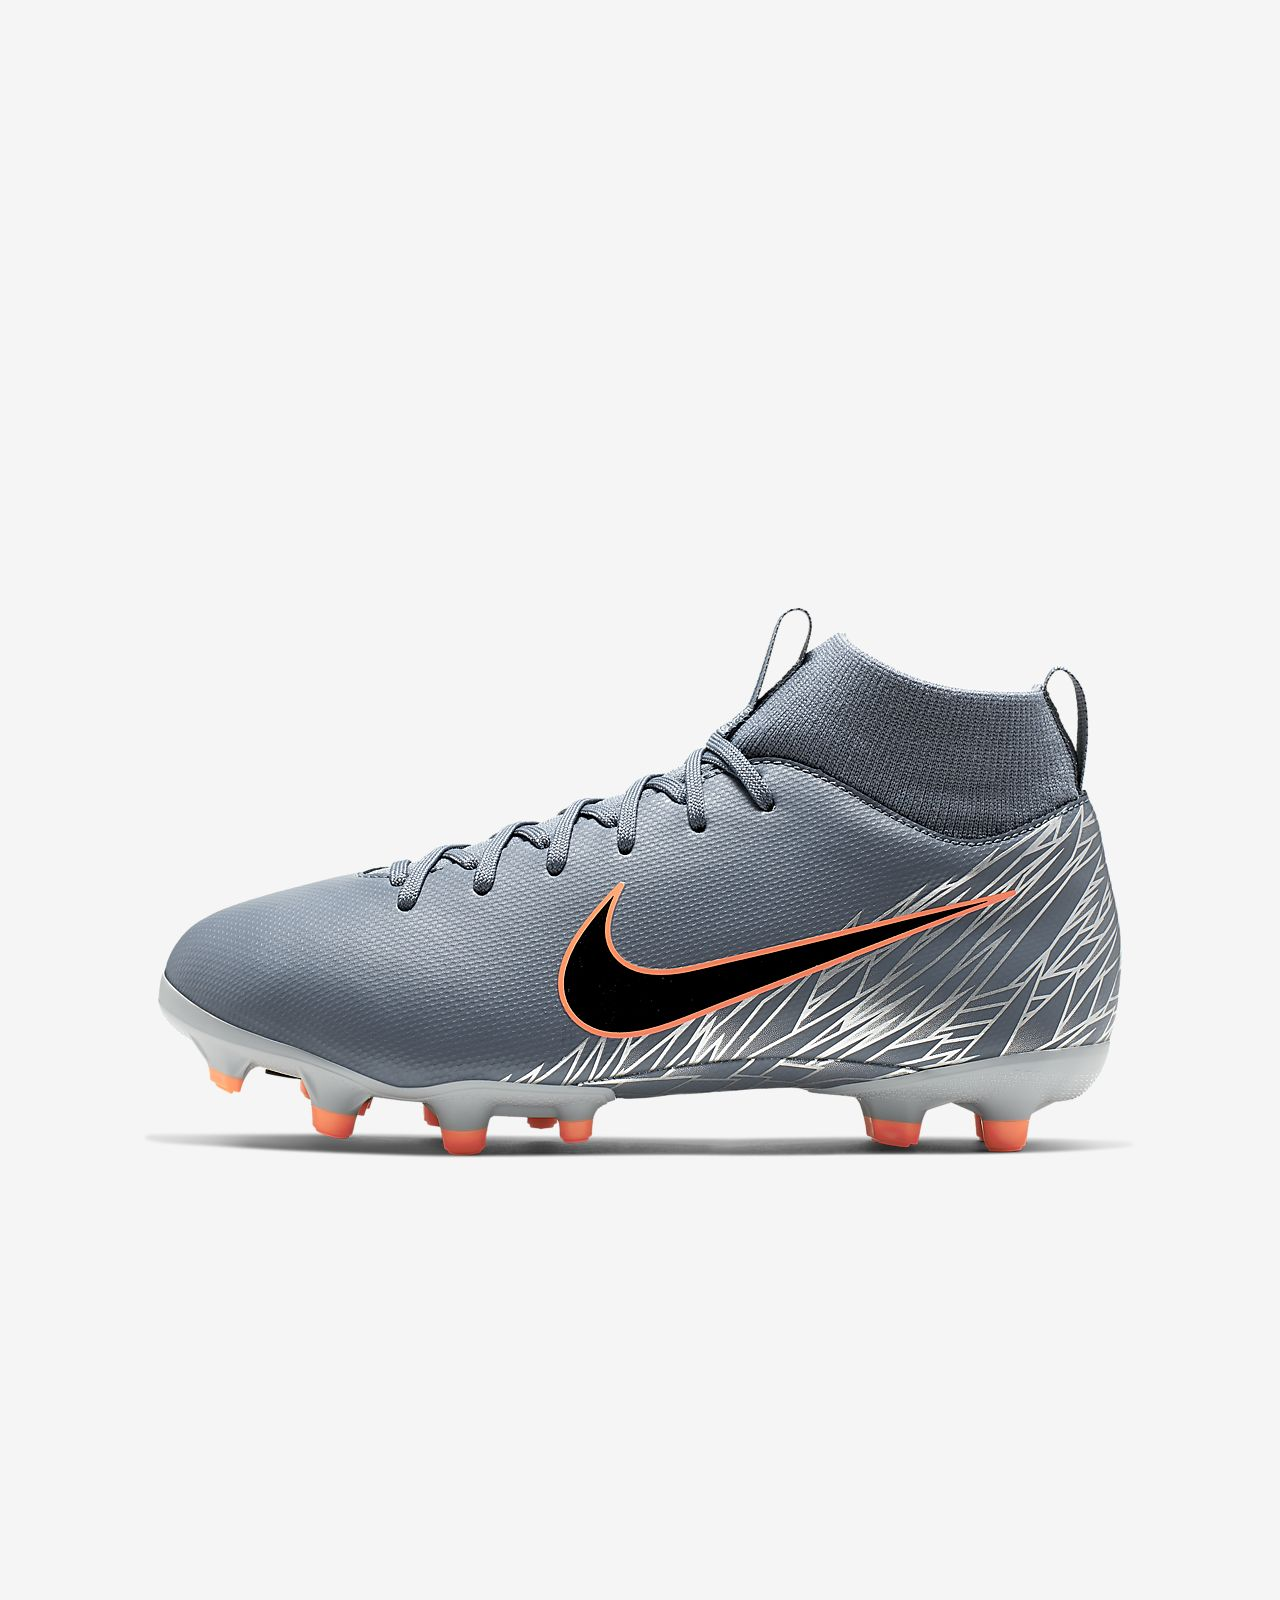 98f431513c44 Nike Jr. Superfly 6 Academy MG Little/Big Kids' Multi-Ground Soccer ...